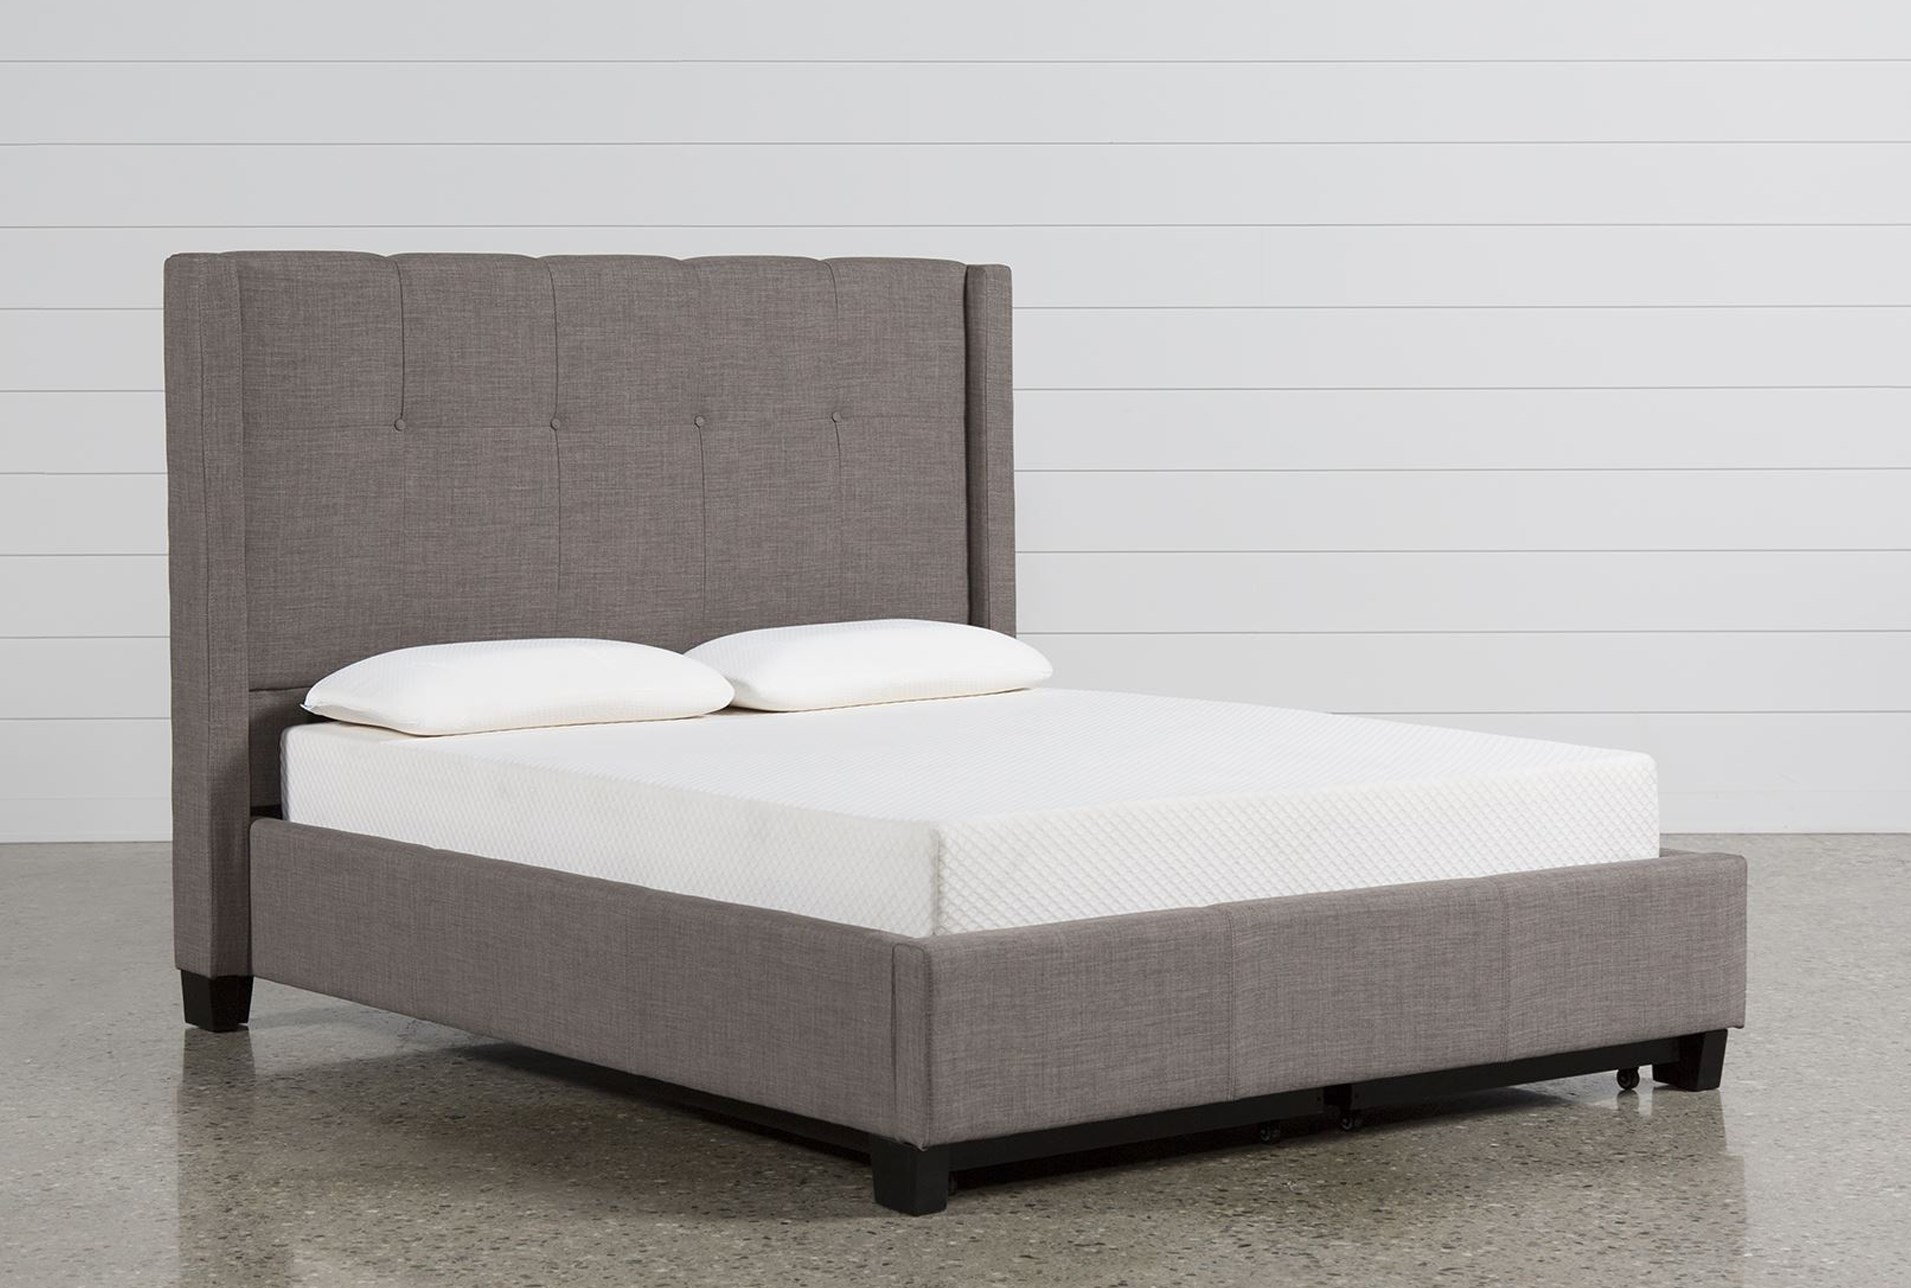 Damon stone queen upholstered platform bed w storage qty 1 has been successfully added to your cart